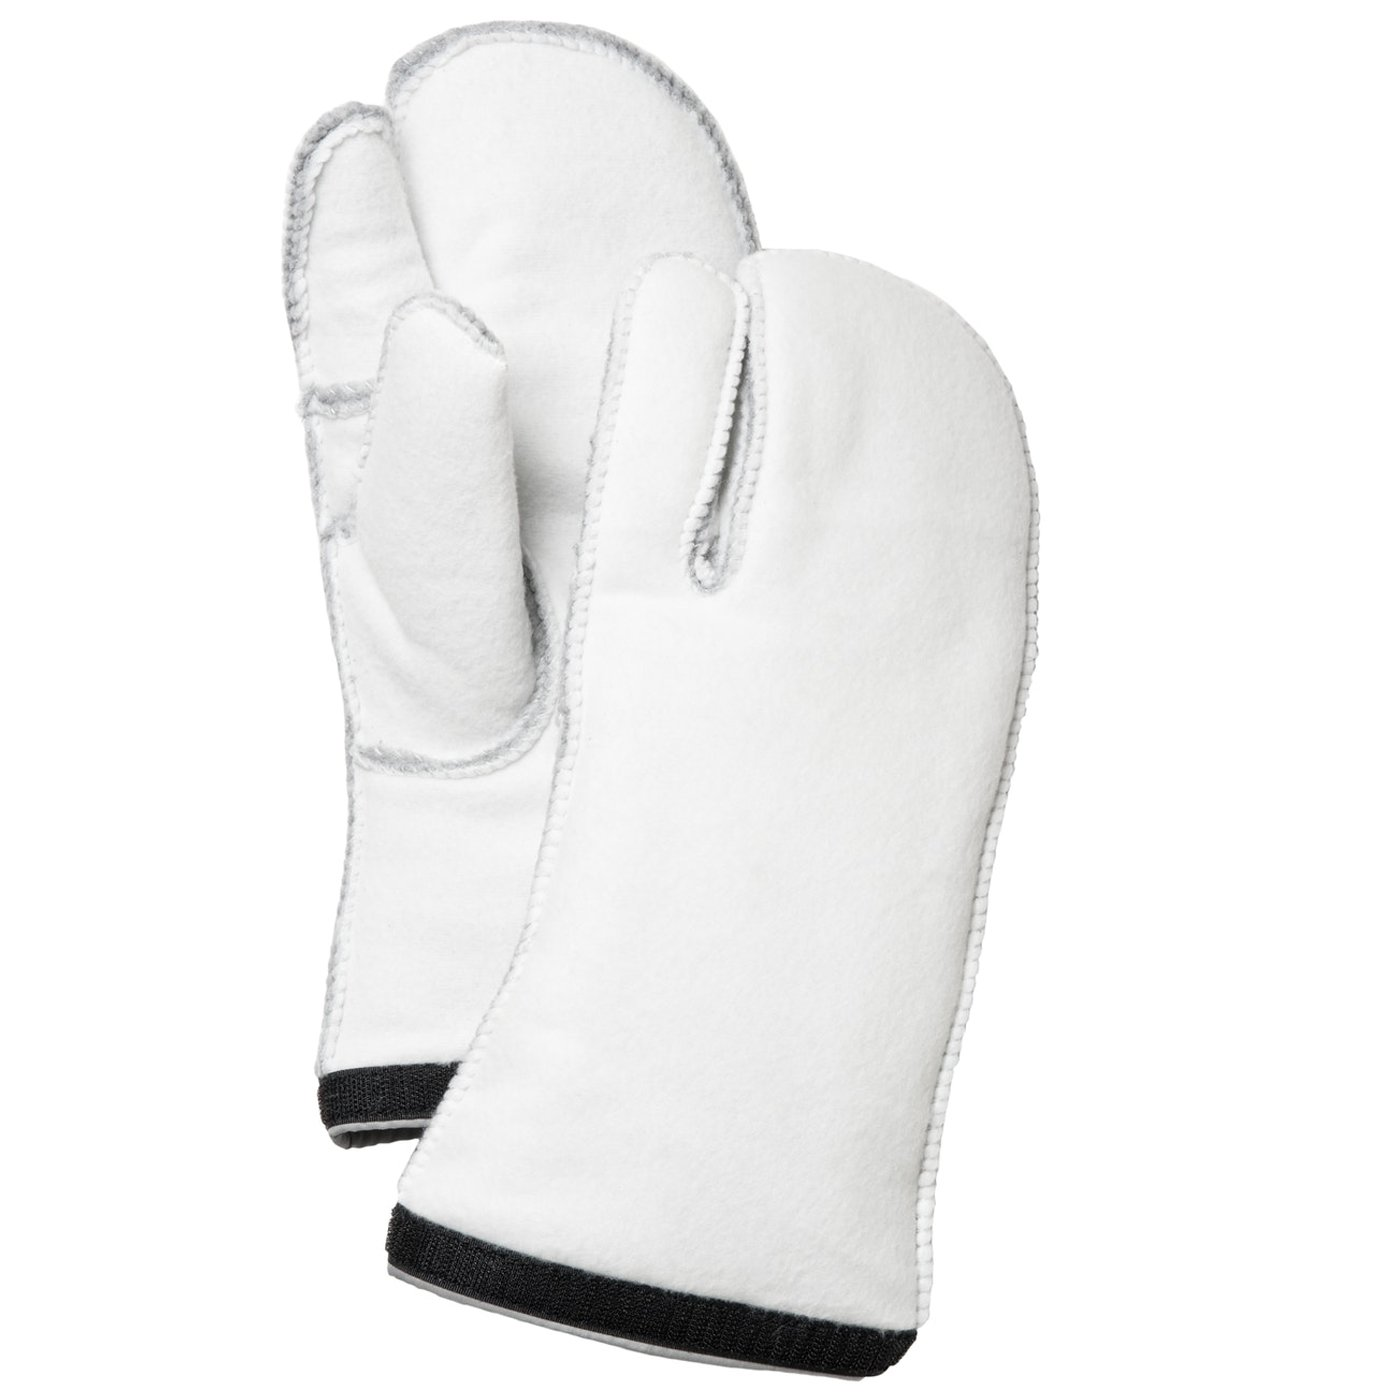 Hestra Insulated Ski And Snowboard Glove Liner Womens 3 Finger 28 00